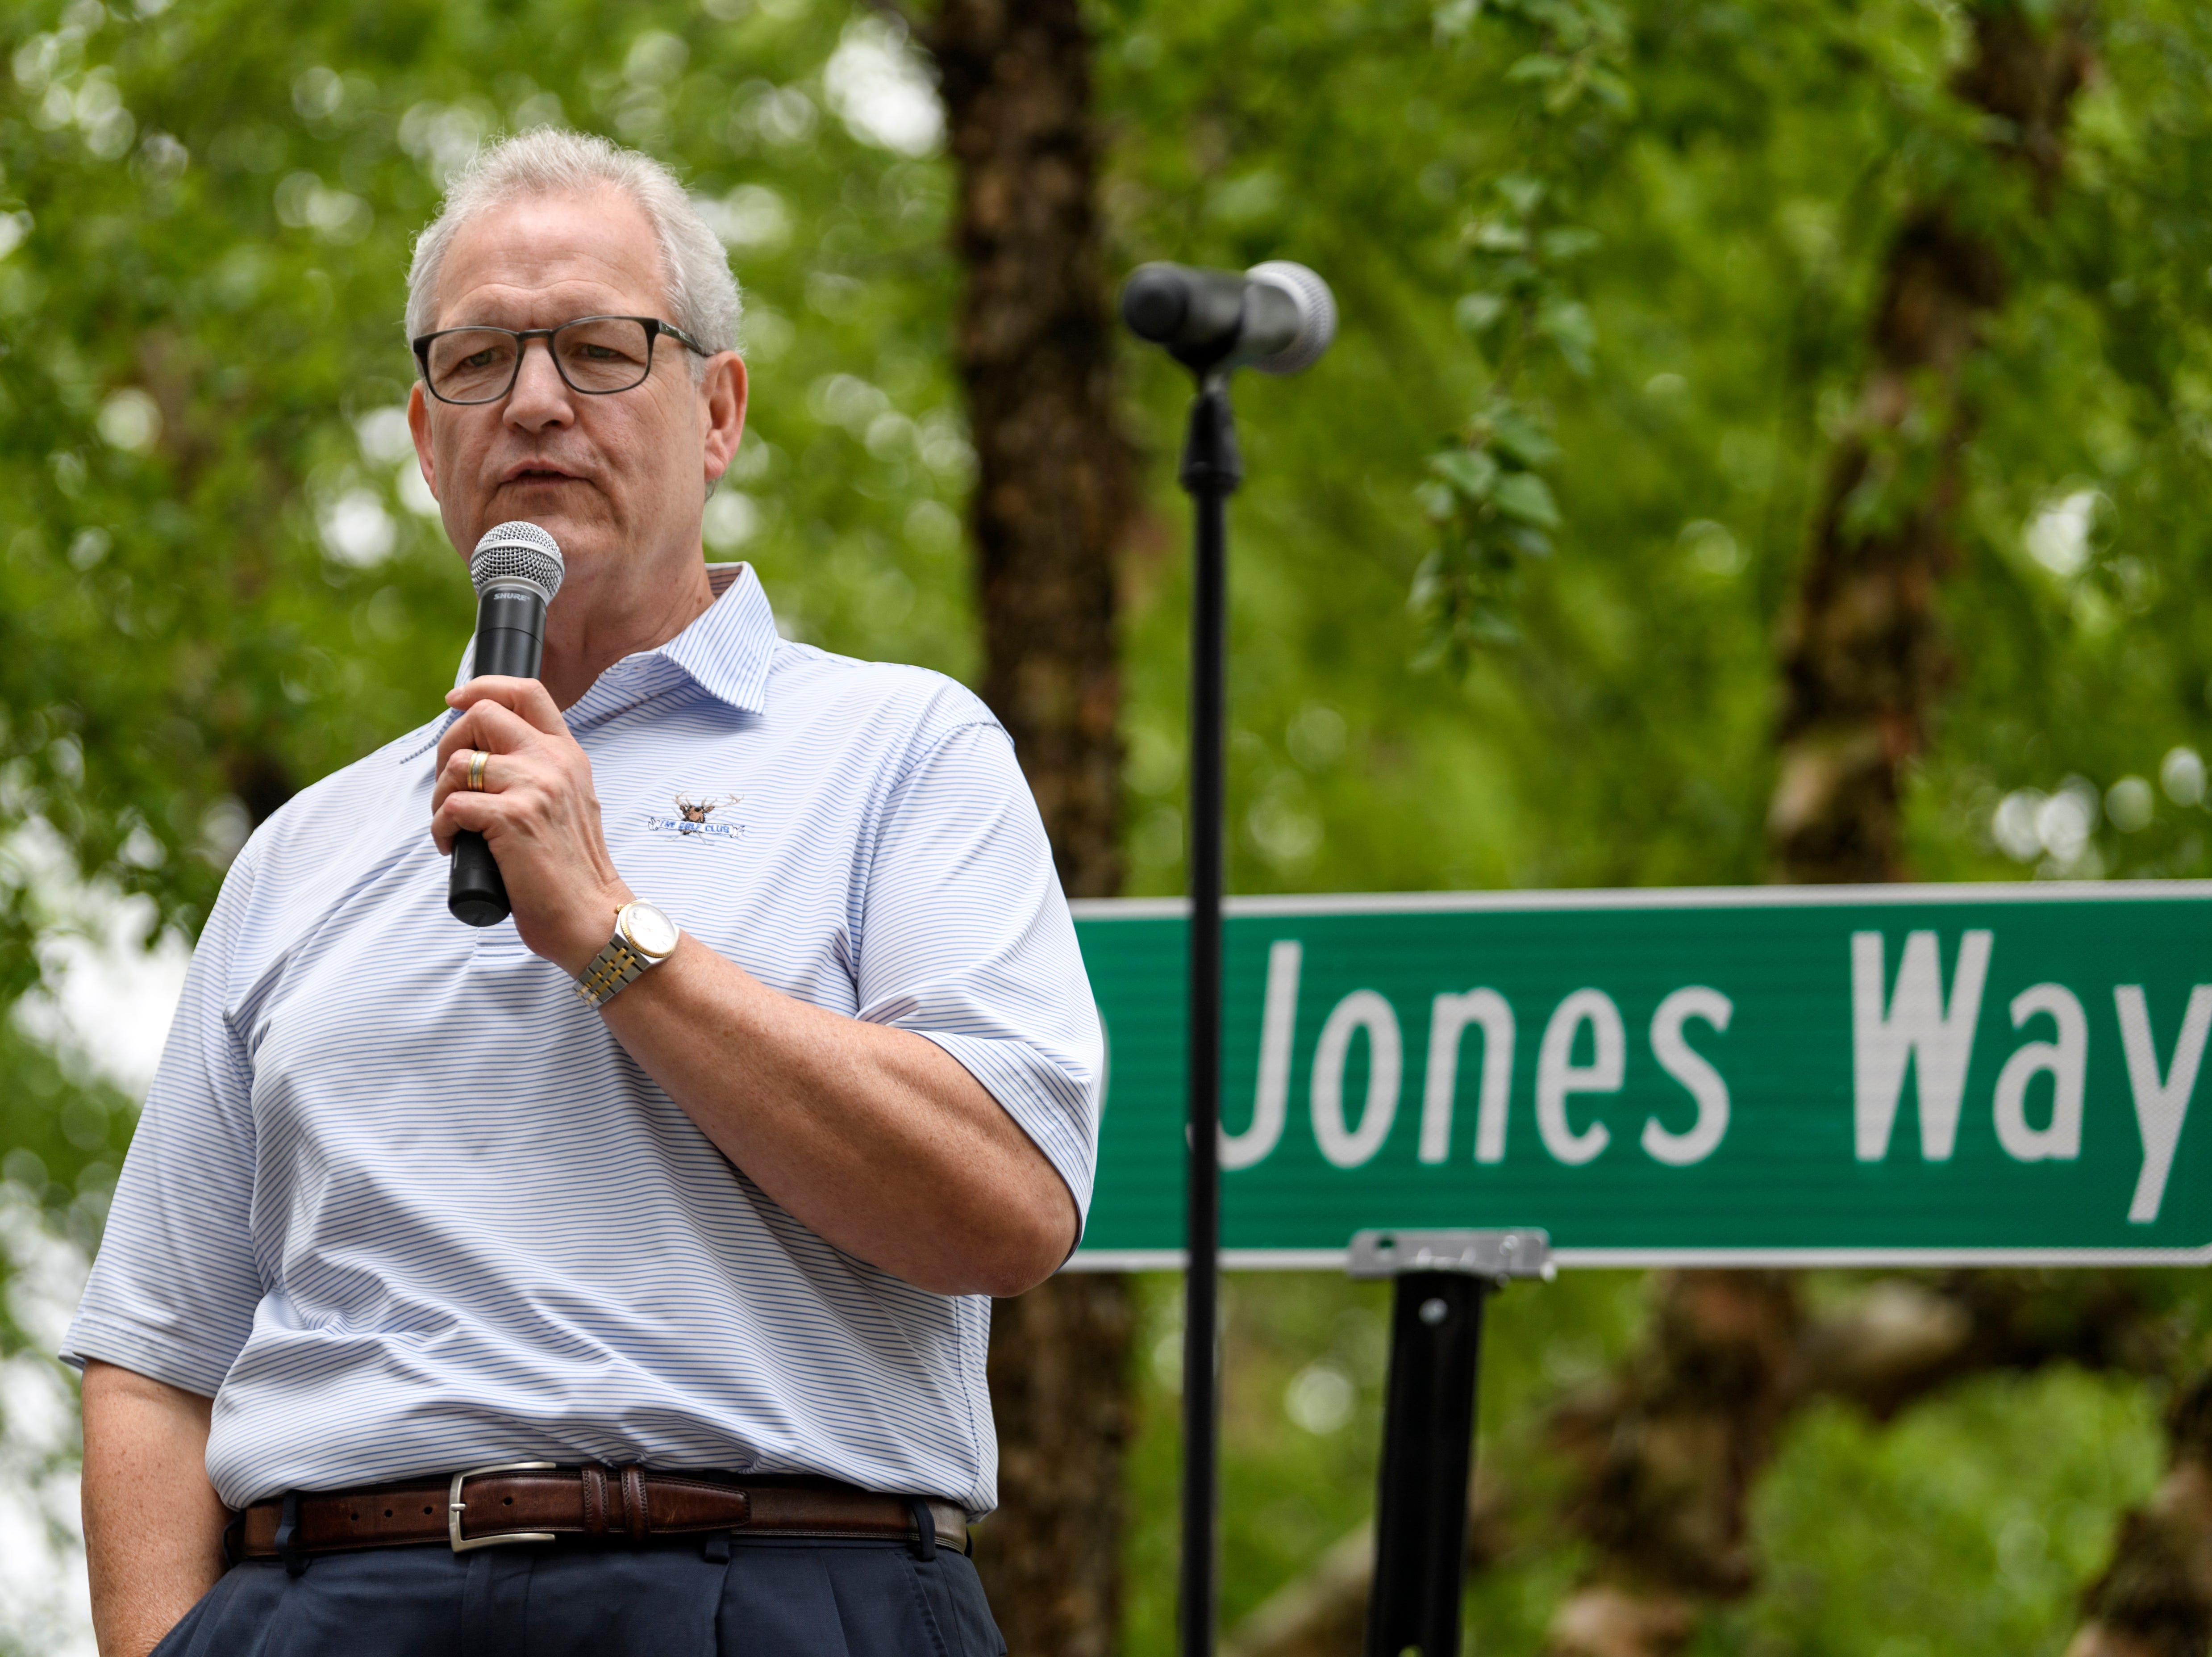 Bob Jones, the chief executive officer of Old National Bank, thanks the community during his retirement farewell party held outside of Old National Bank in downtown Evansville, Ind., Friday, May 3, 2019. Jones served as the Old National Bank CEO for 14 and a half years.